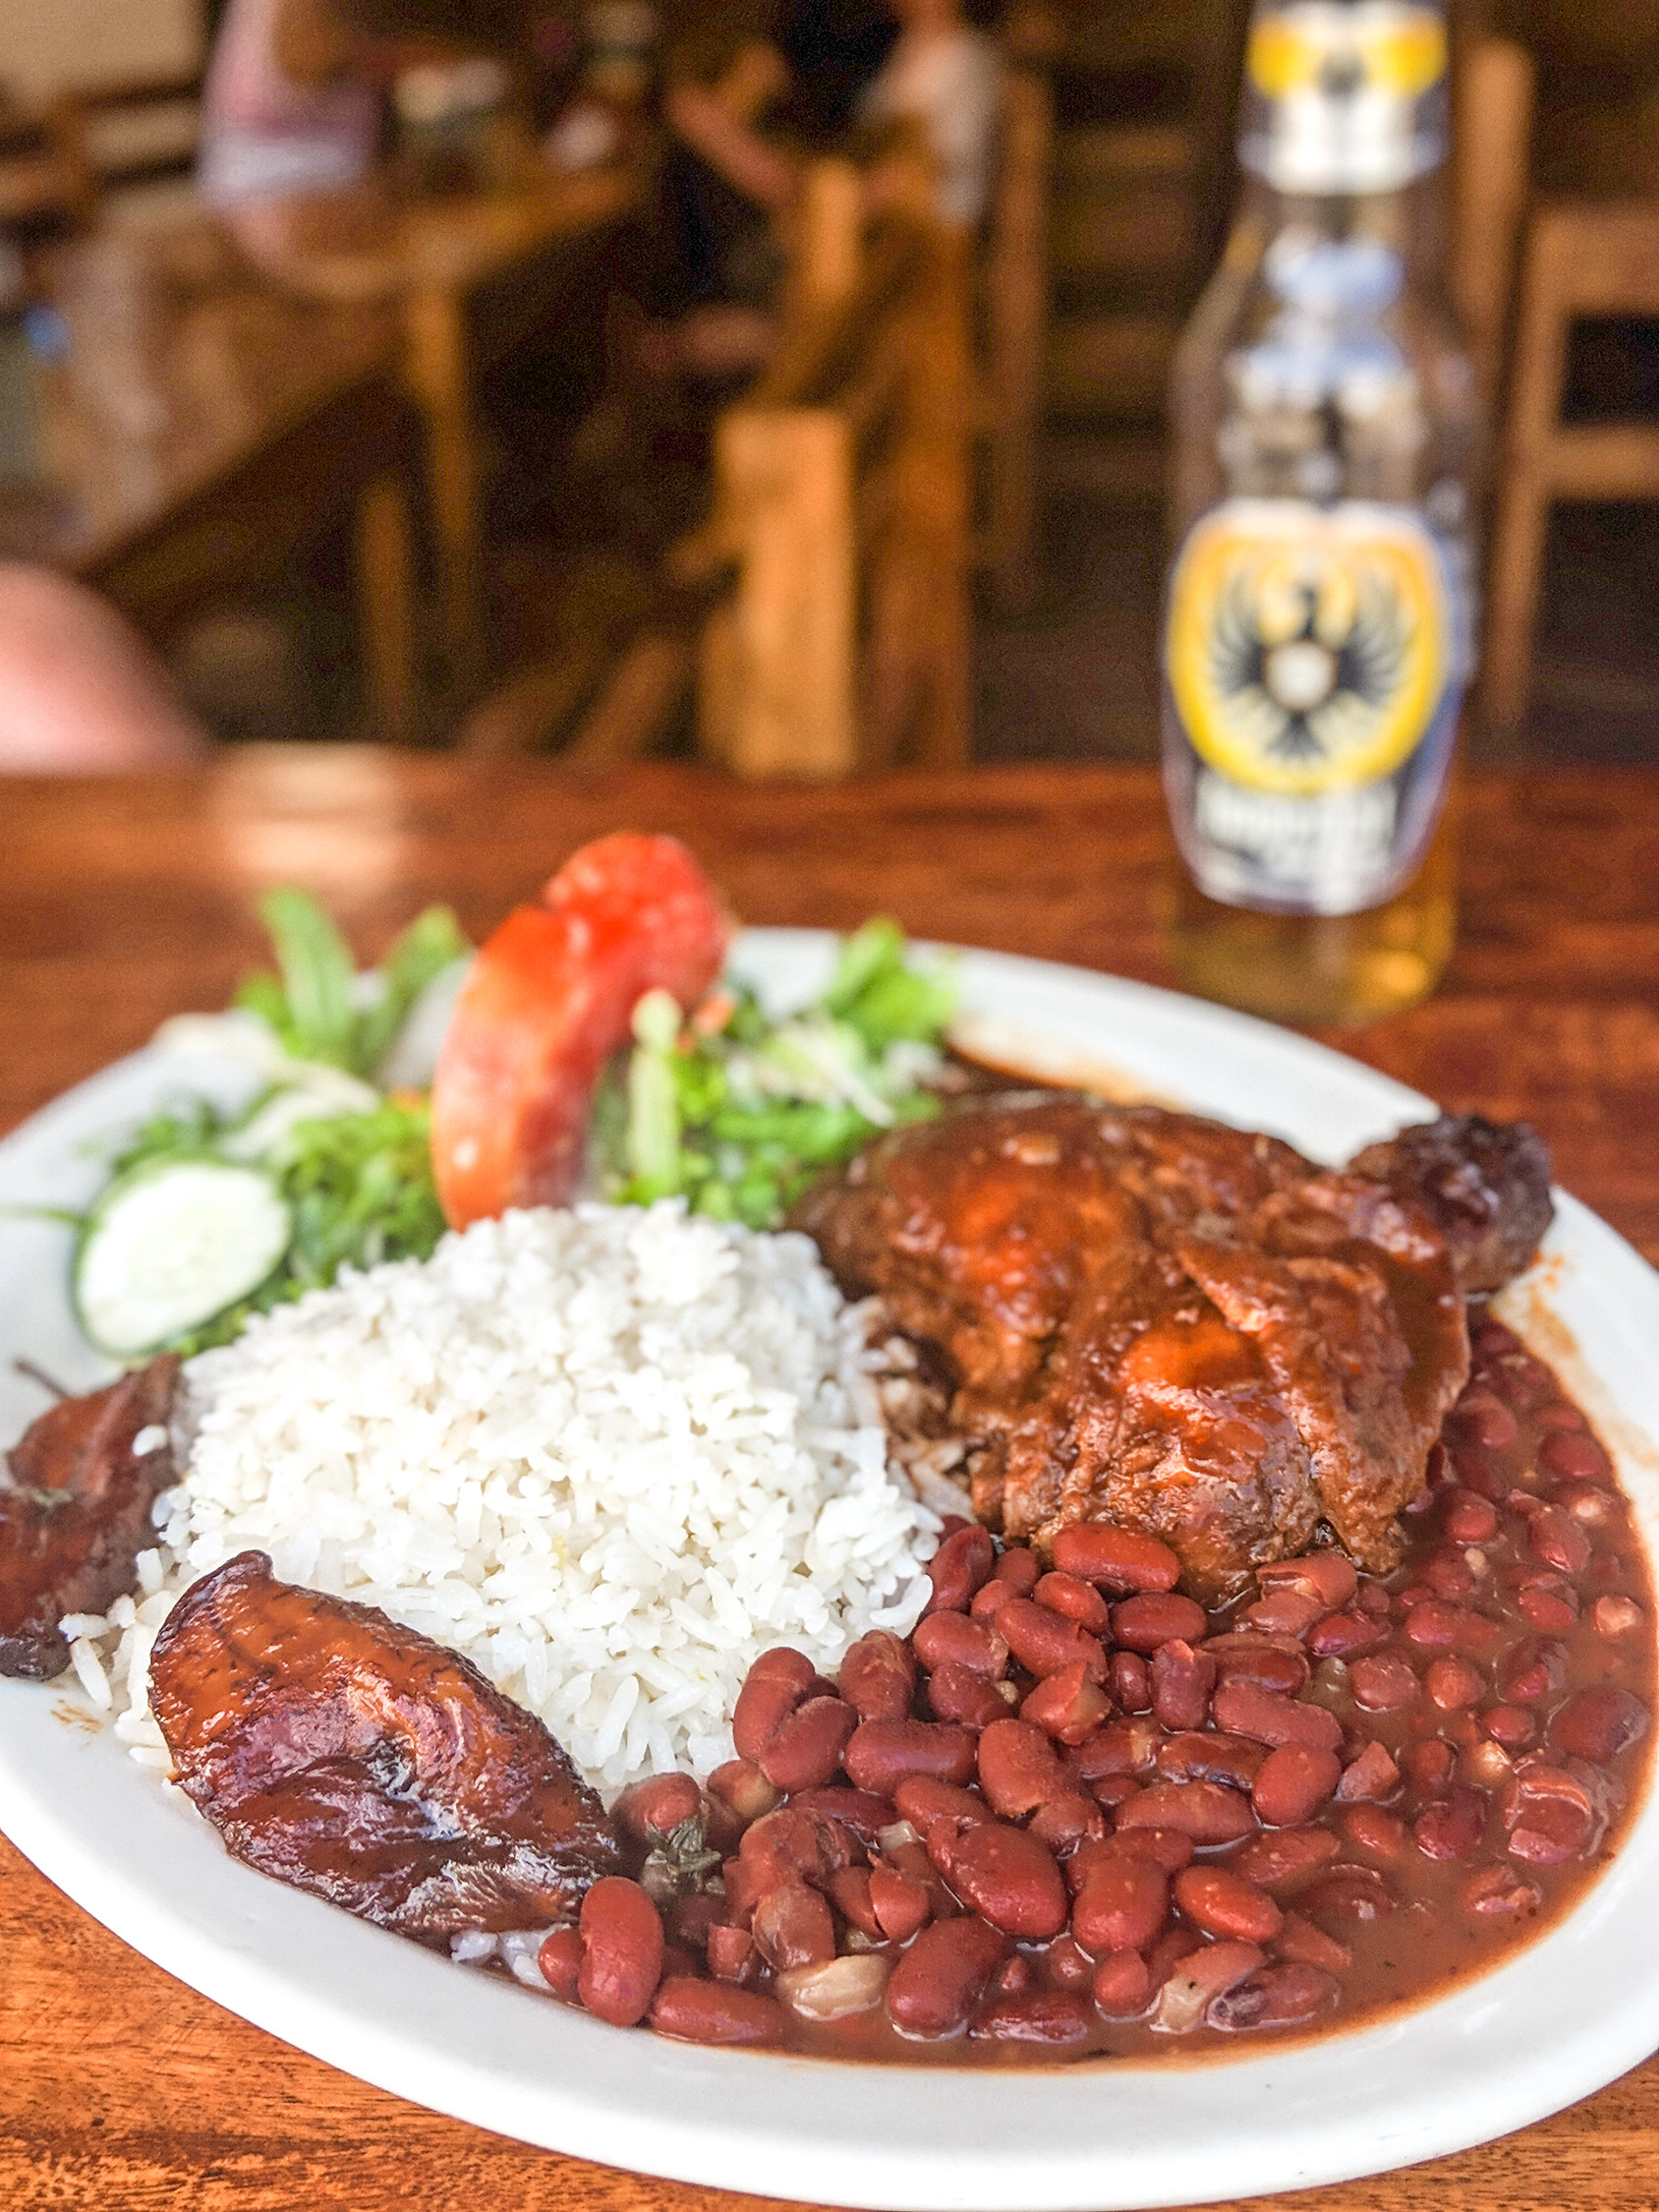 Costa Rican Caribbean chicken with casado as the side in Puerto Viejo Costa Rica